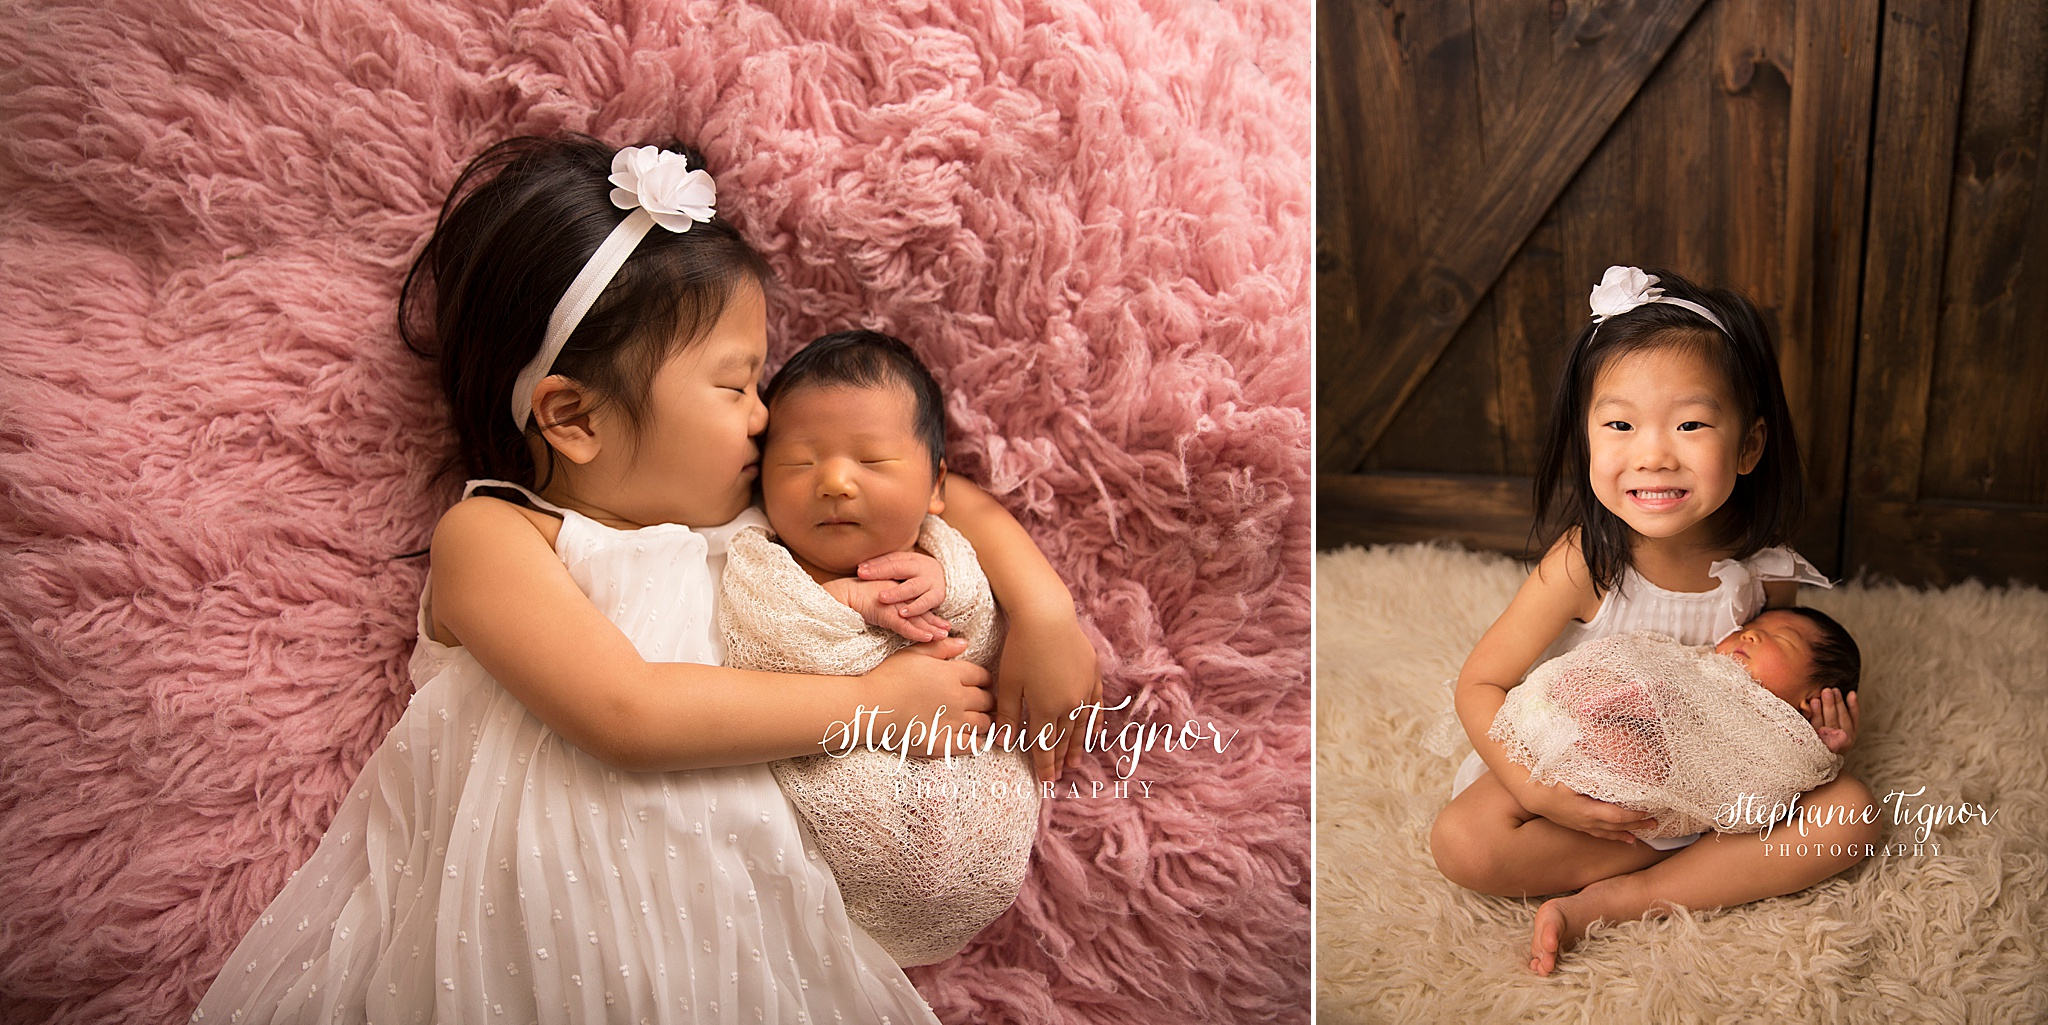 Stephanie Tignor Photography_Newborn Photographer_0077.jpg